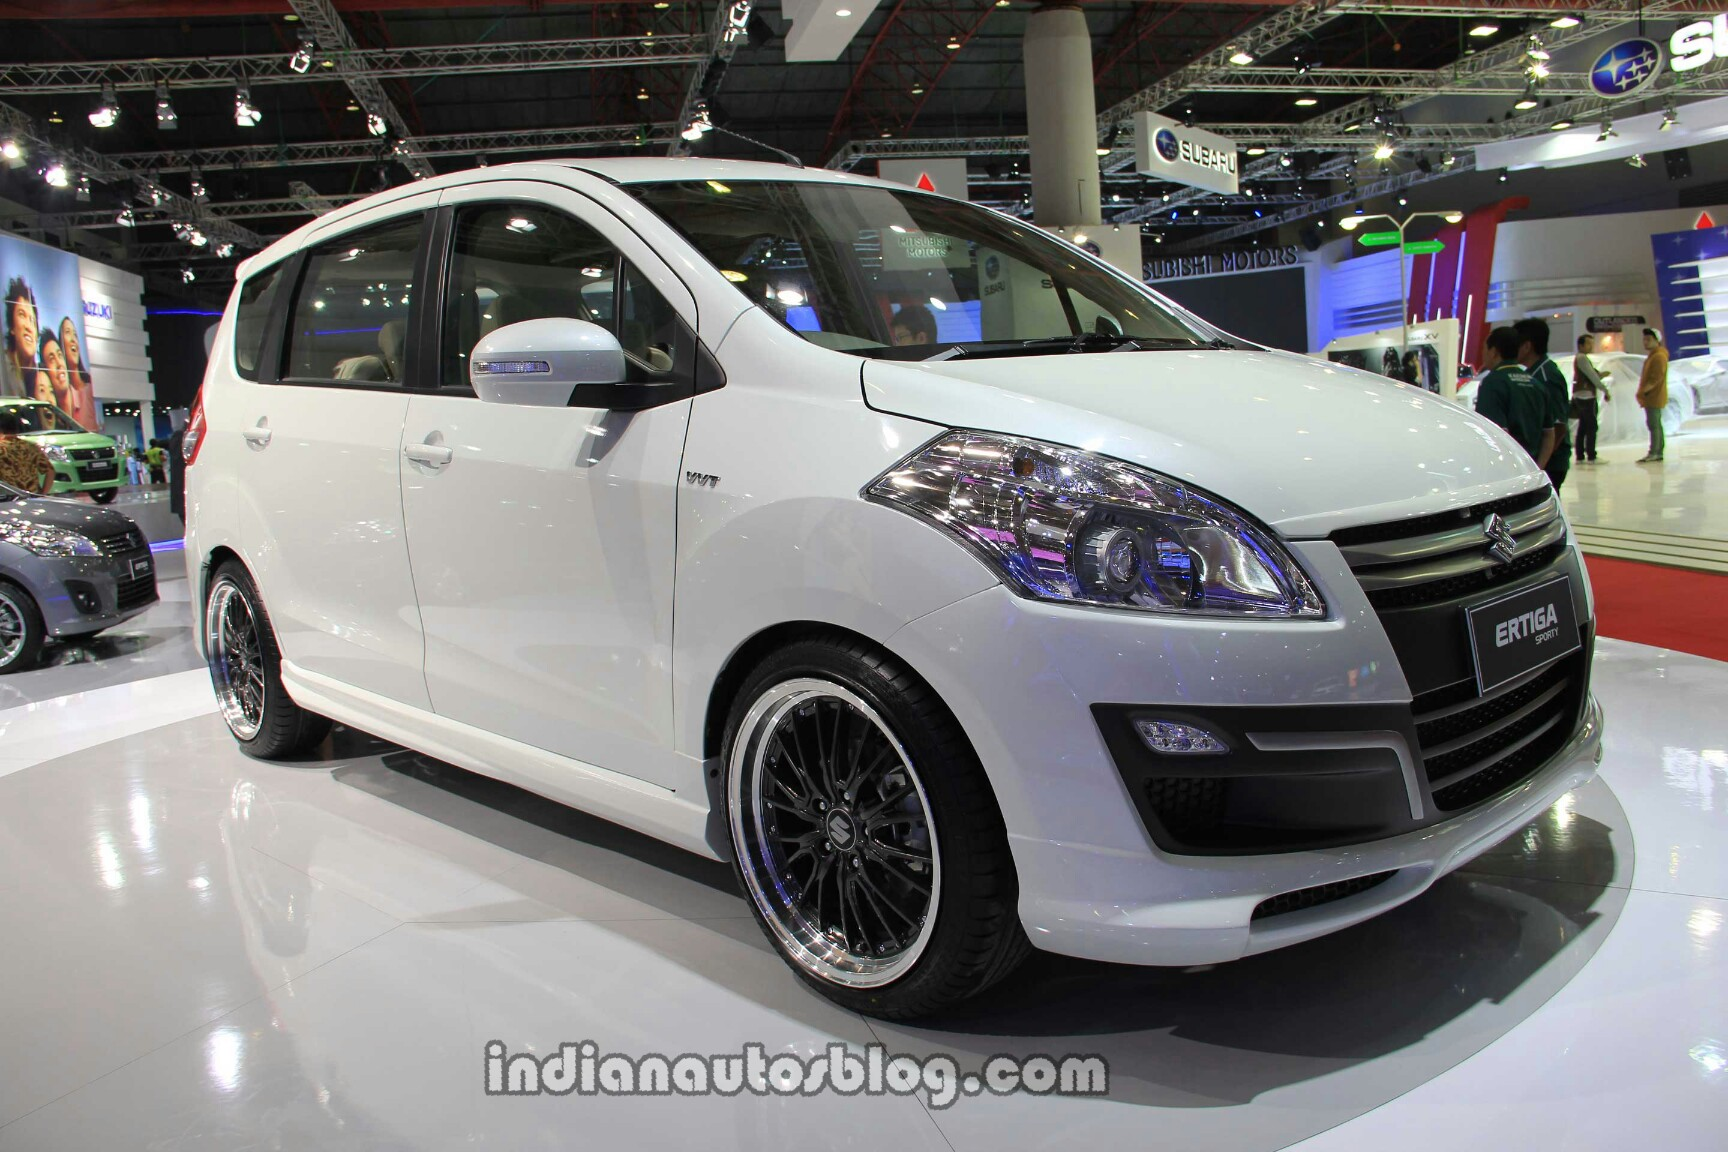 suzuki ertiga sporty 2018 with Suzuki Ertiga Sporty Iims 2013 98485 on Honda X Blade Image Gallery 407352 further New 2014 Volvo S60 Review Test Drive 374635 as well Suzuki Ertiga Sporty Iims 2013 98485 as well Harga Mobil Suzuki further Motortrade Philippines Price List 2016.